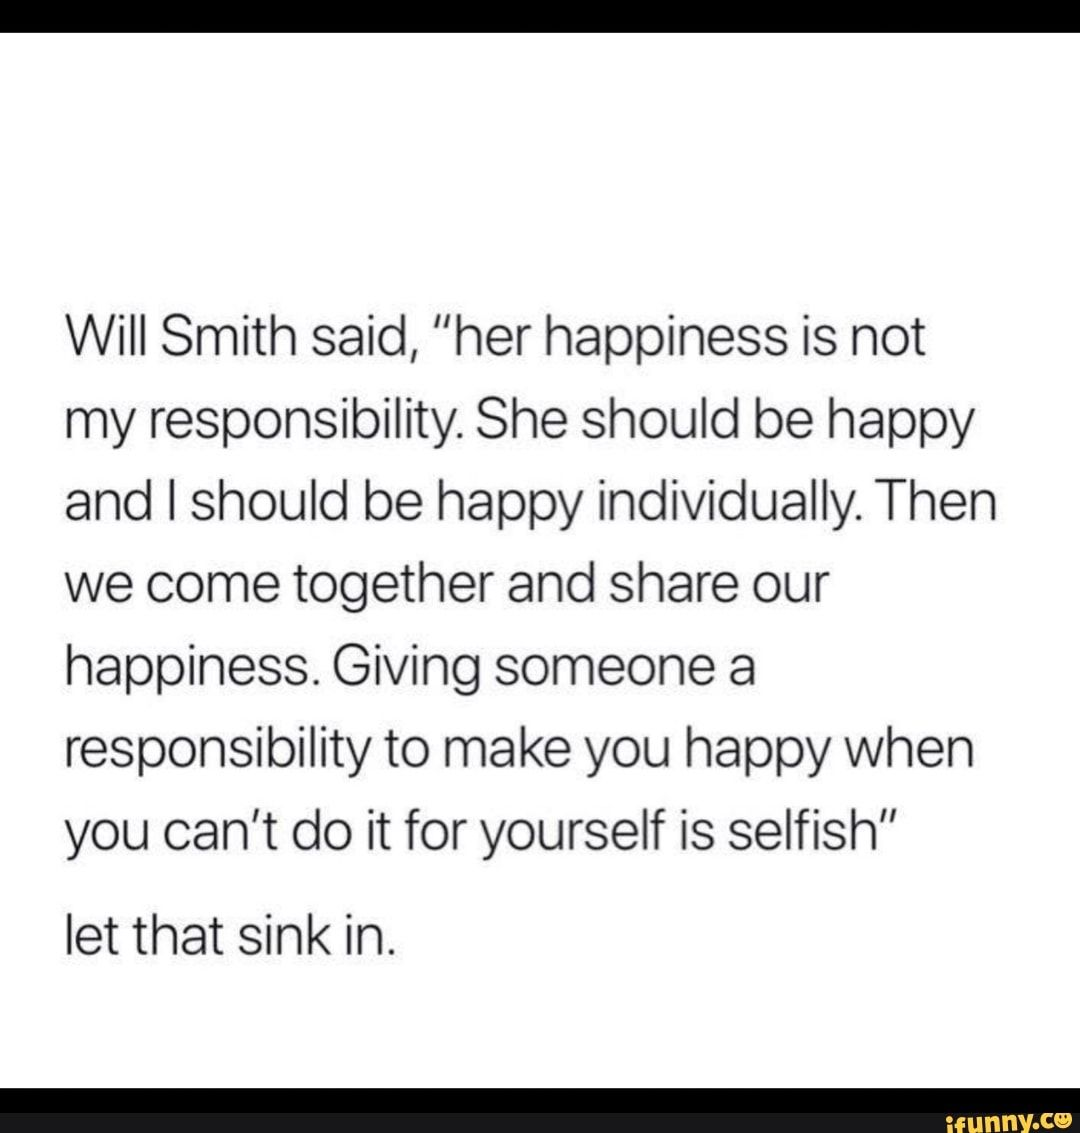 Will Smith Said Her Happiness Is Not My Responsibility She Should Be Happy And I Should Be Happy Individually Then We Come Together And Share Our Happiness In 2020 Will Smith